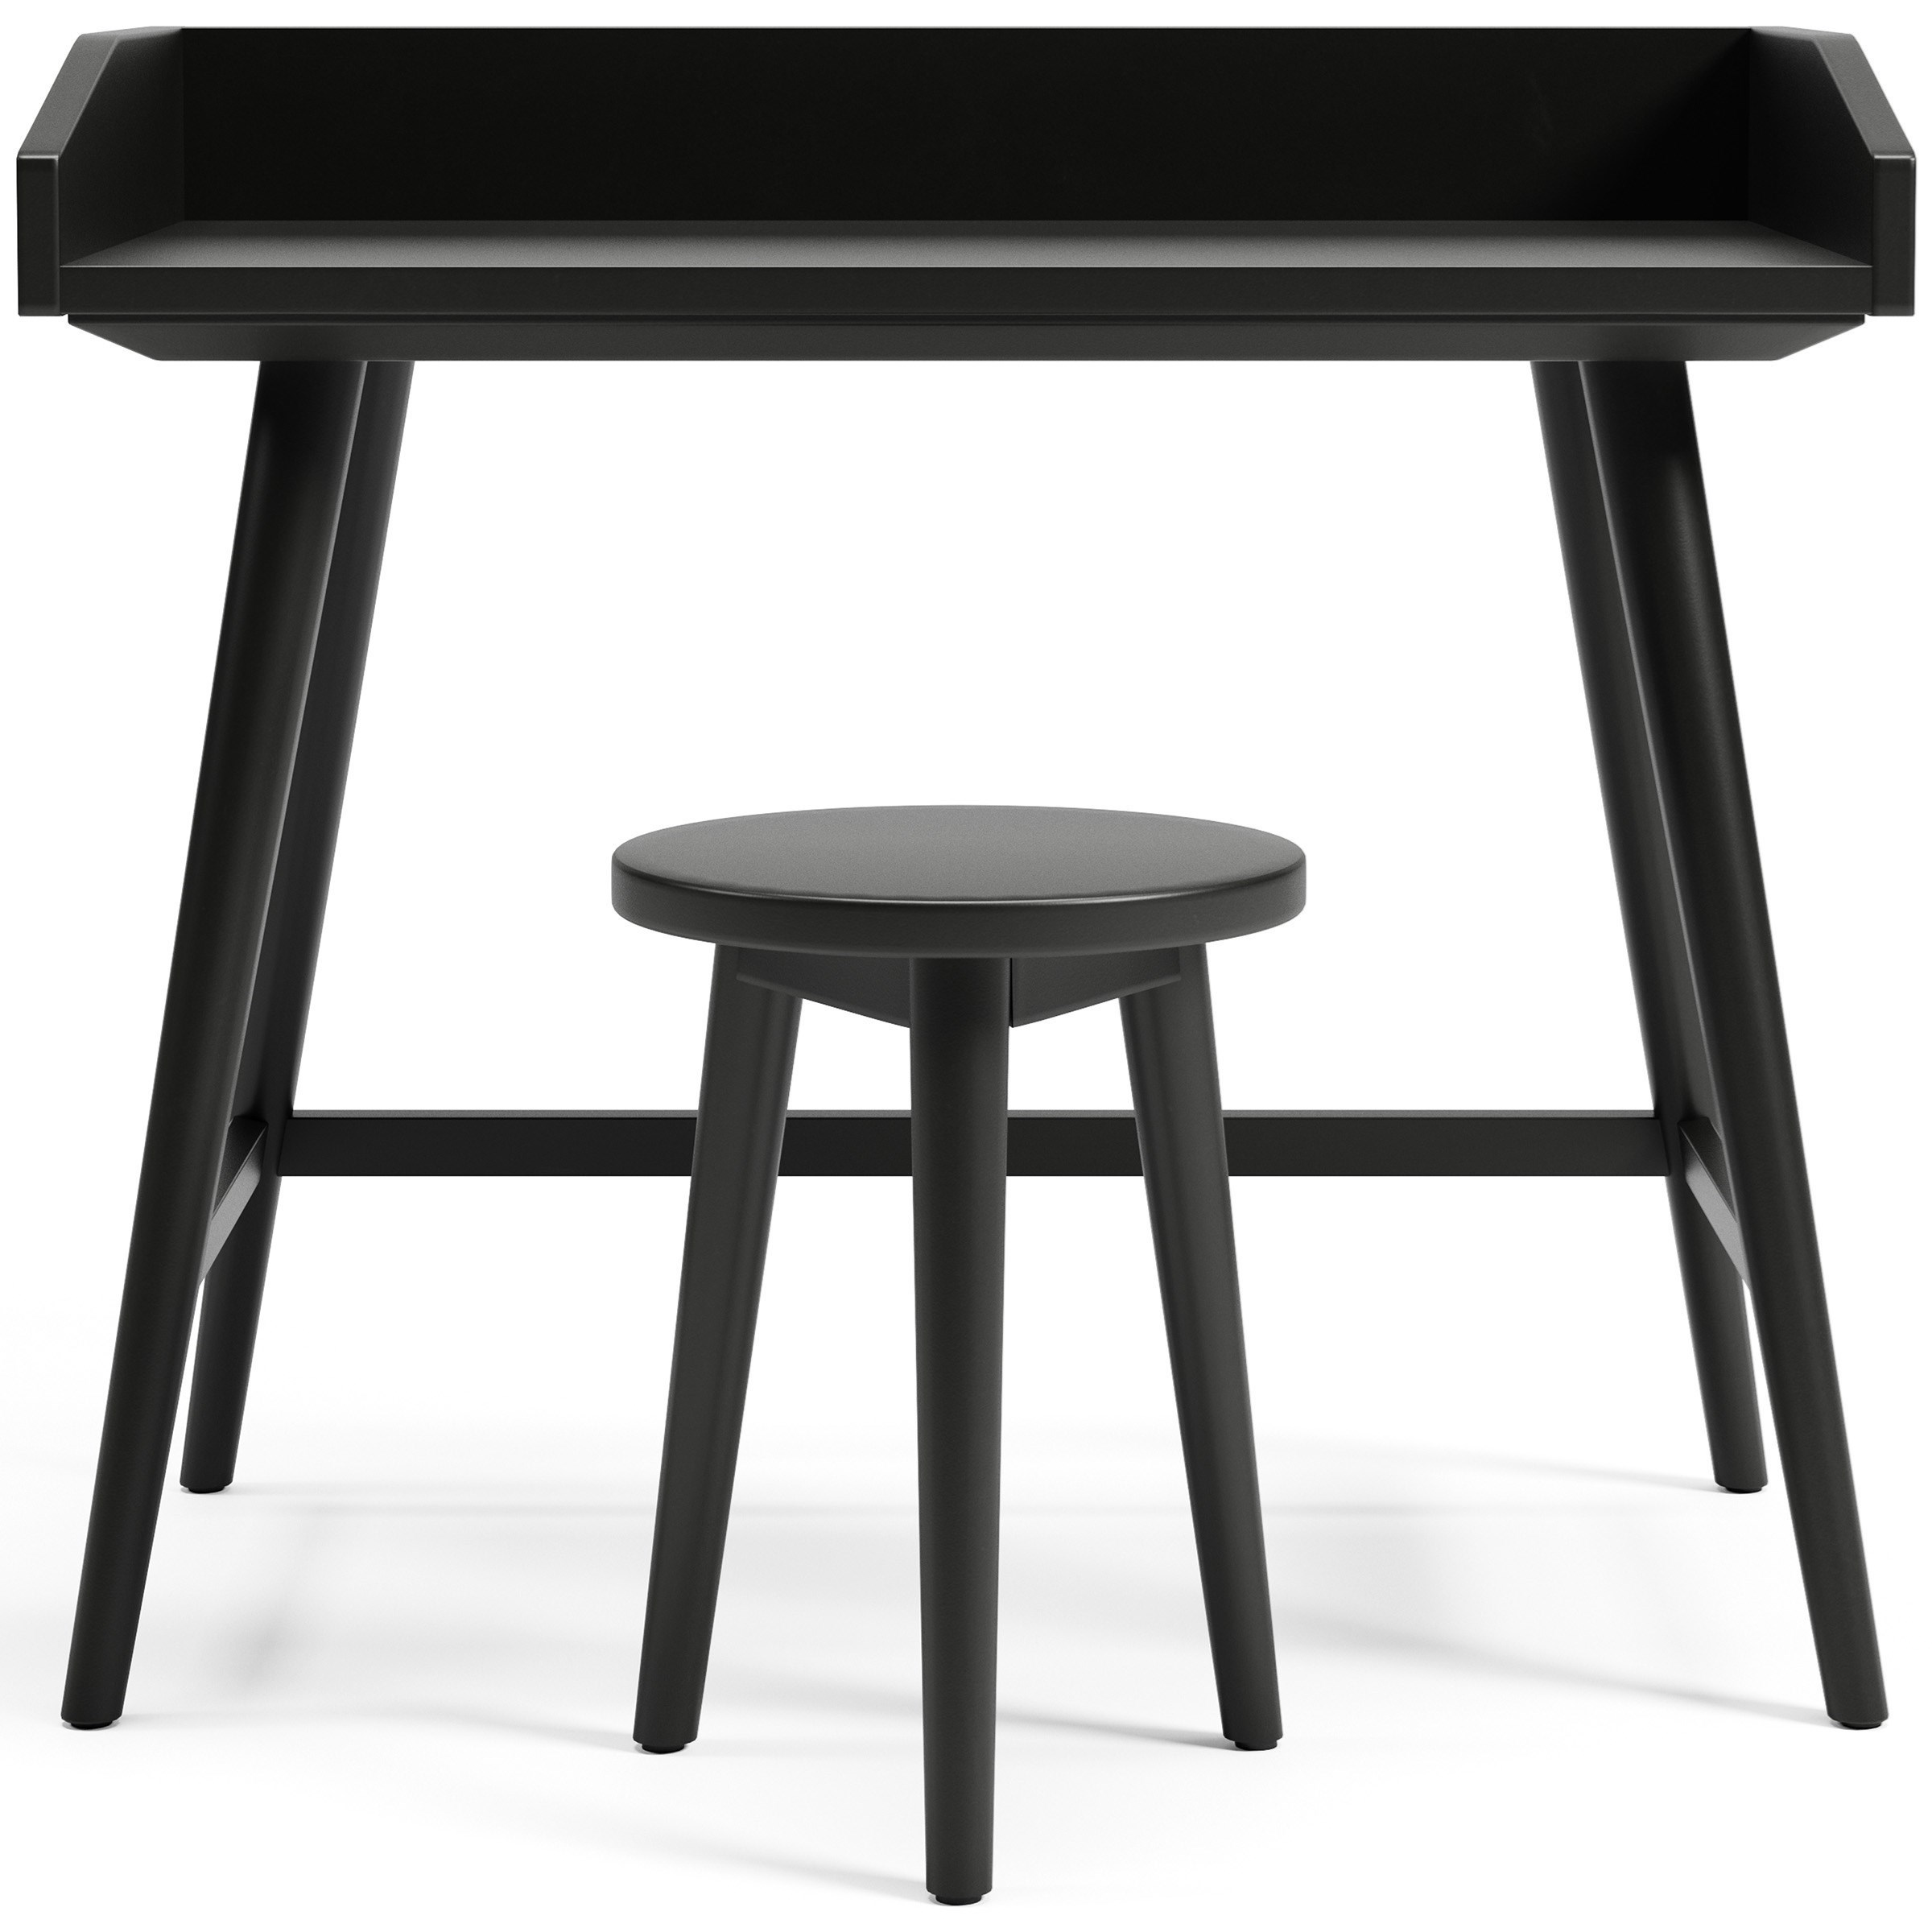 Blariden Desk w/ Stool by Signature Design by Ashley at Northeast Factory Direct